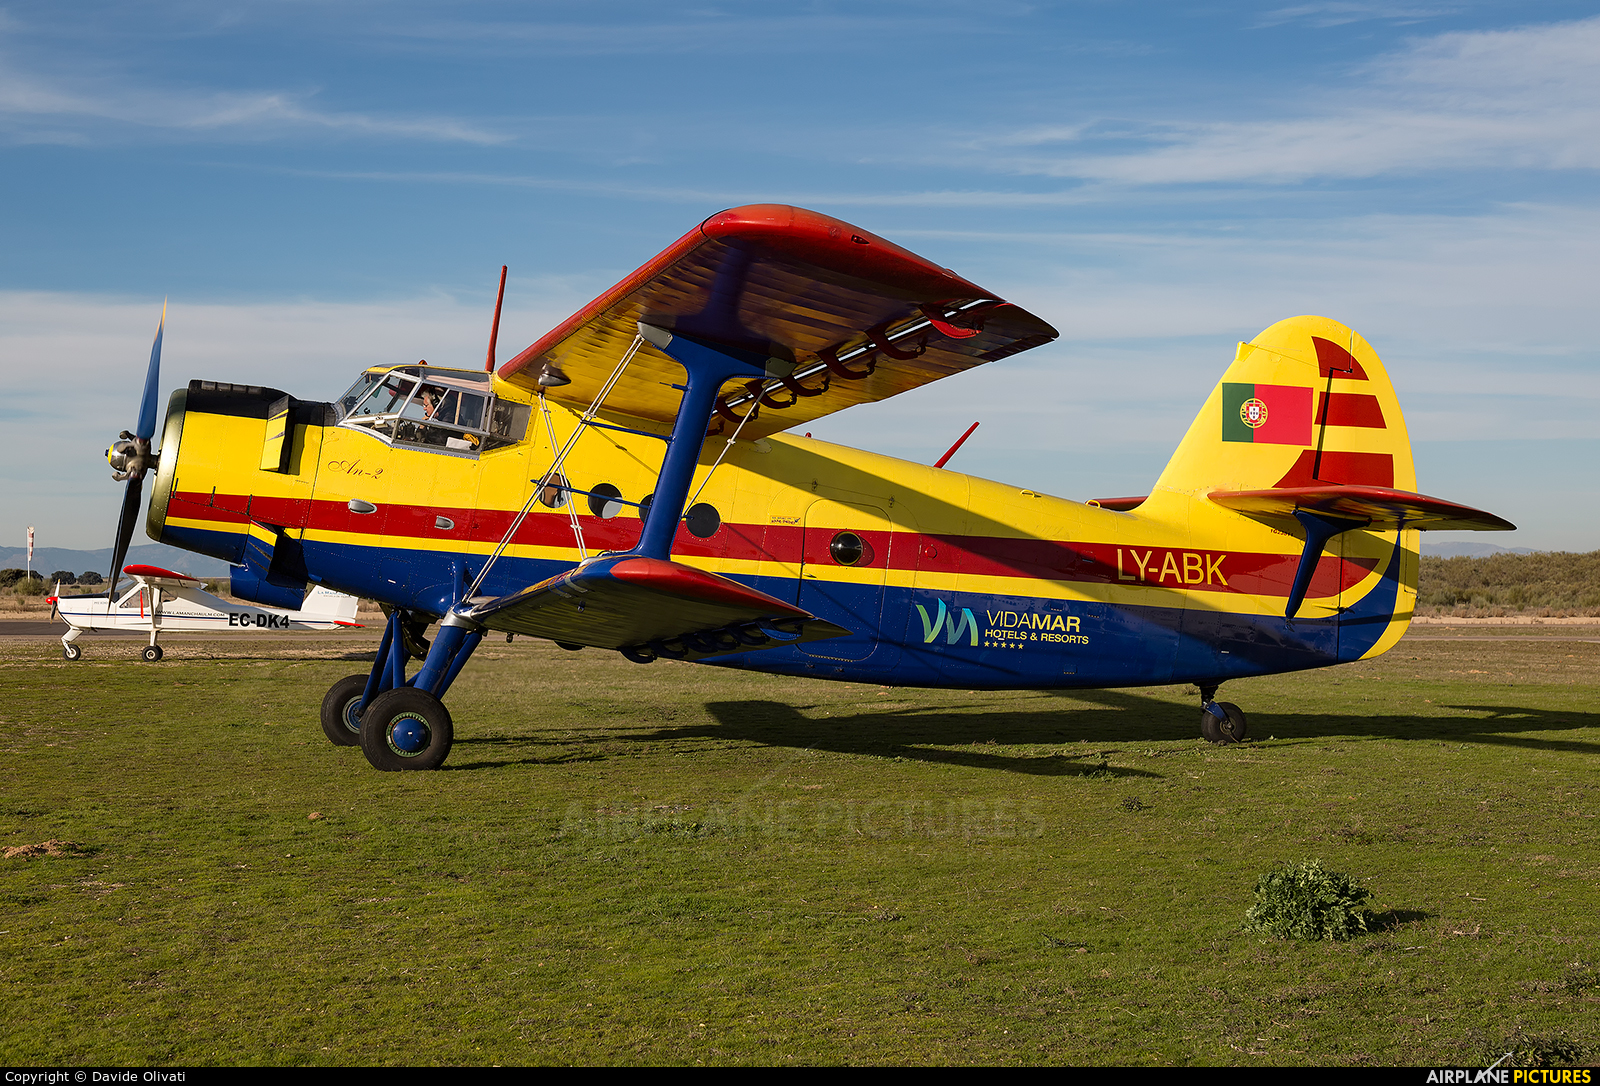 Private LY-ABK aircraft at Casarrubios del Monte